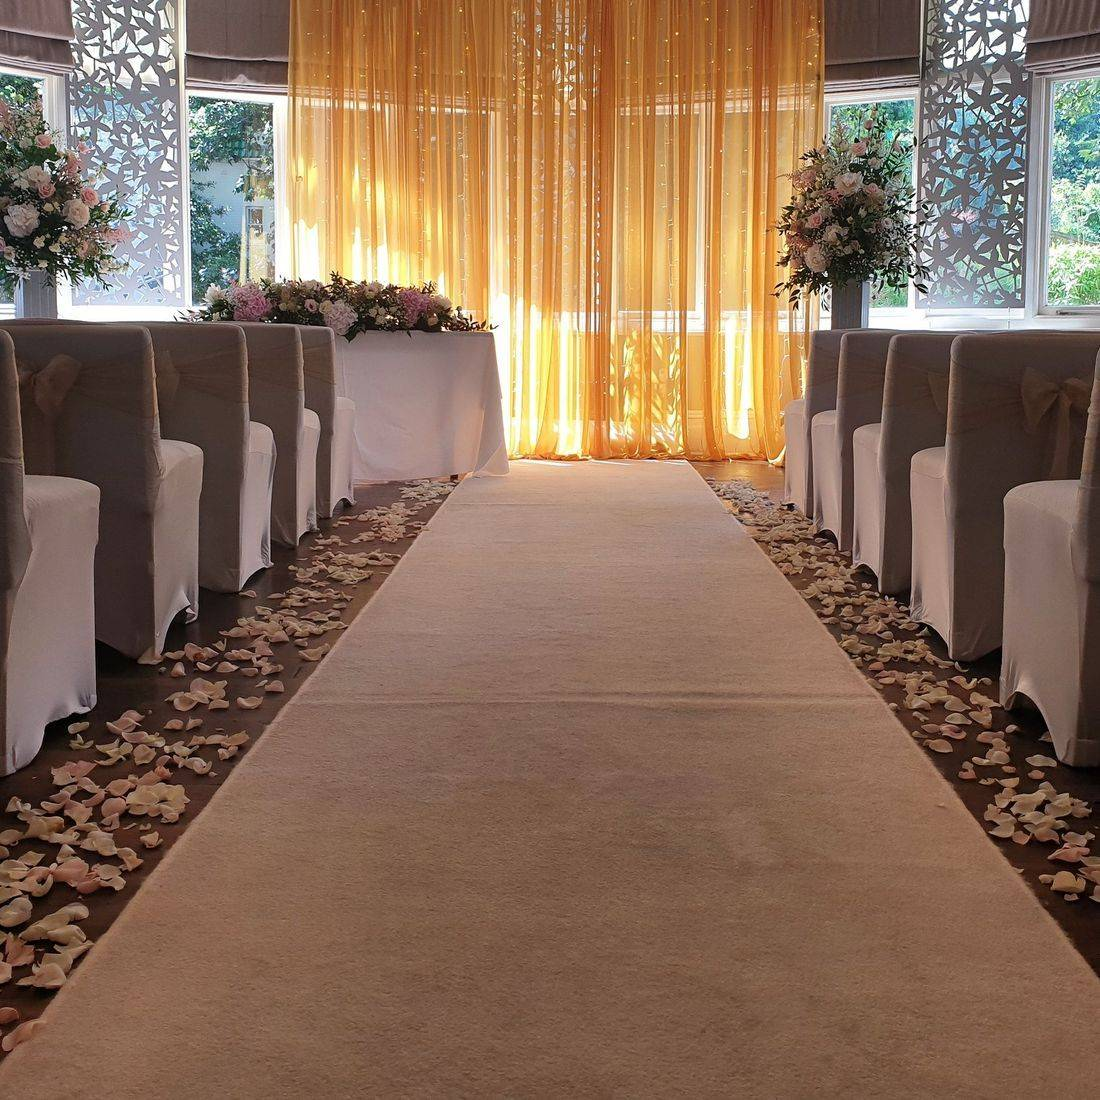 Wedding ceremony at the Green House Hotel Bournemouth